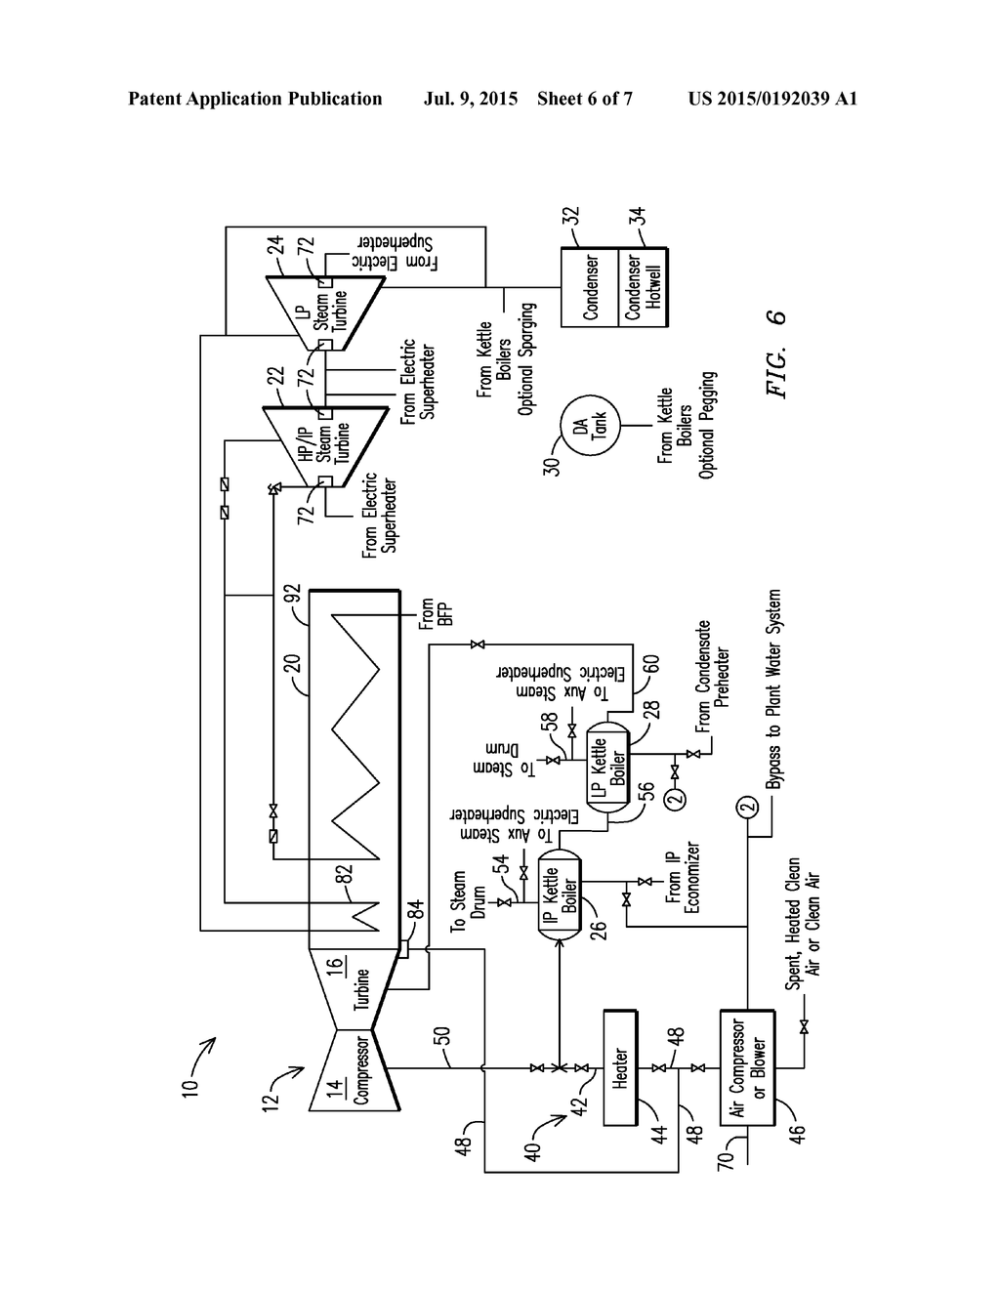 medium resolution of auxillary steam generation arrangement for a combined cycle power plant diagram schematic and image 07